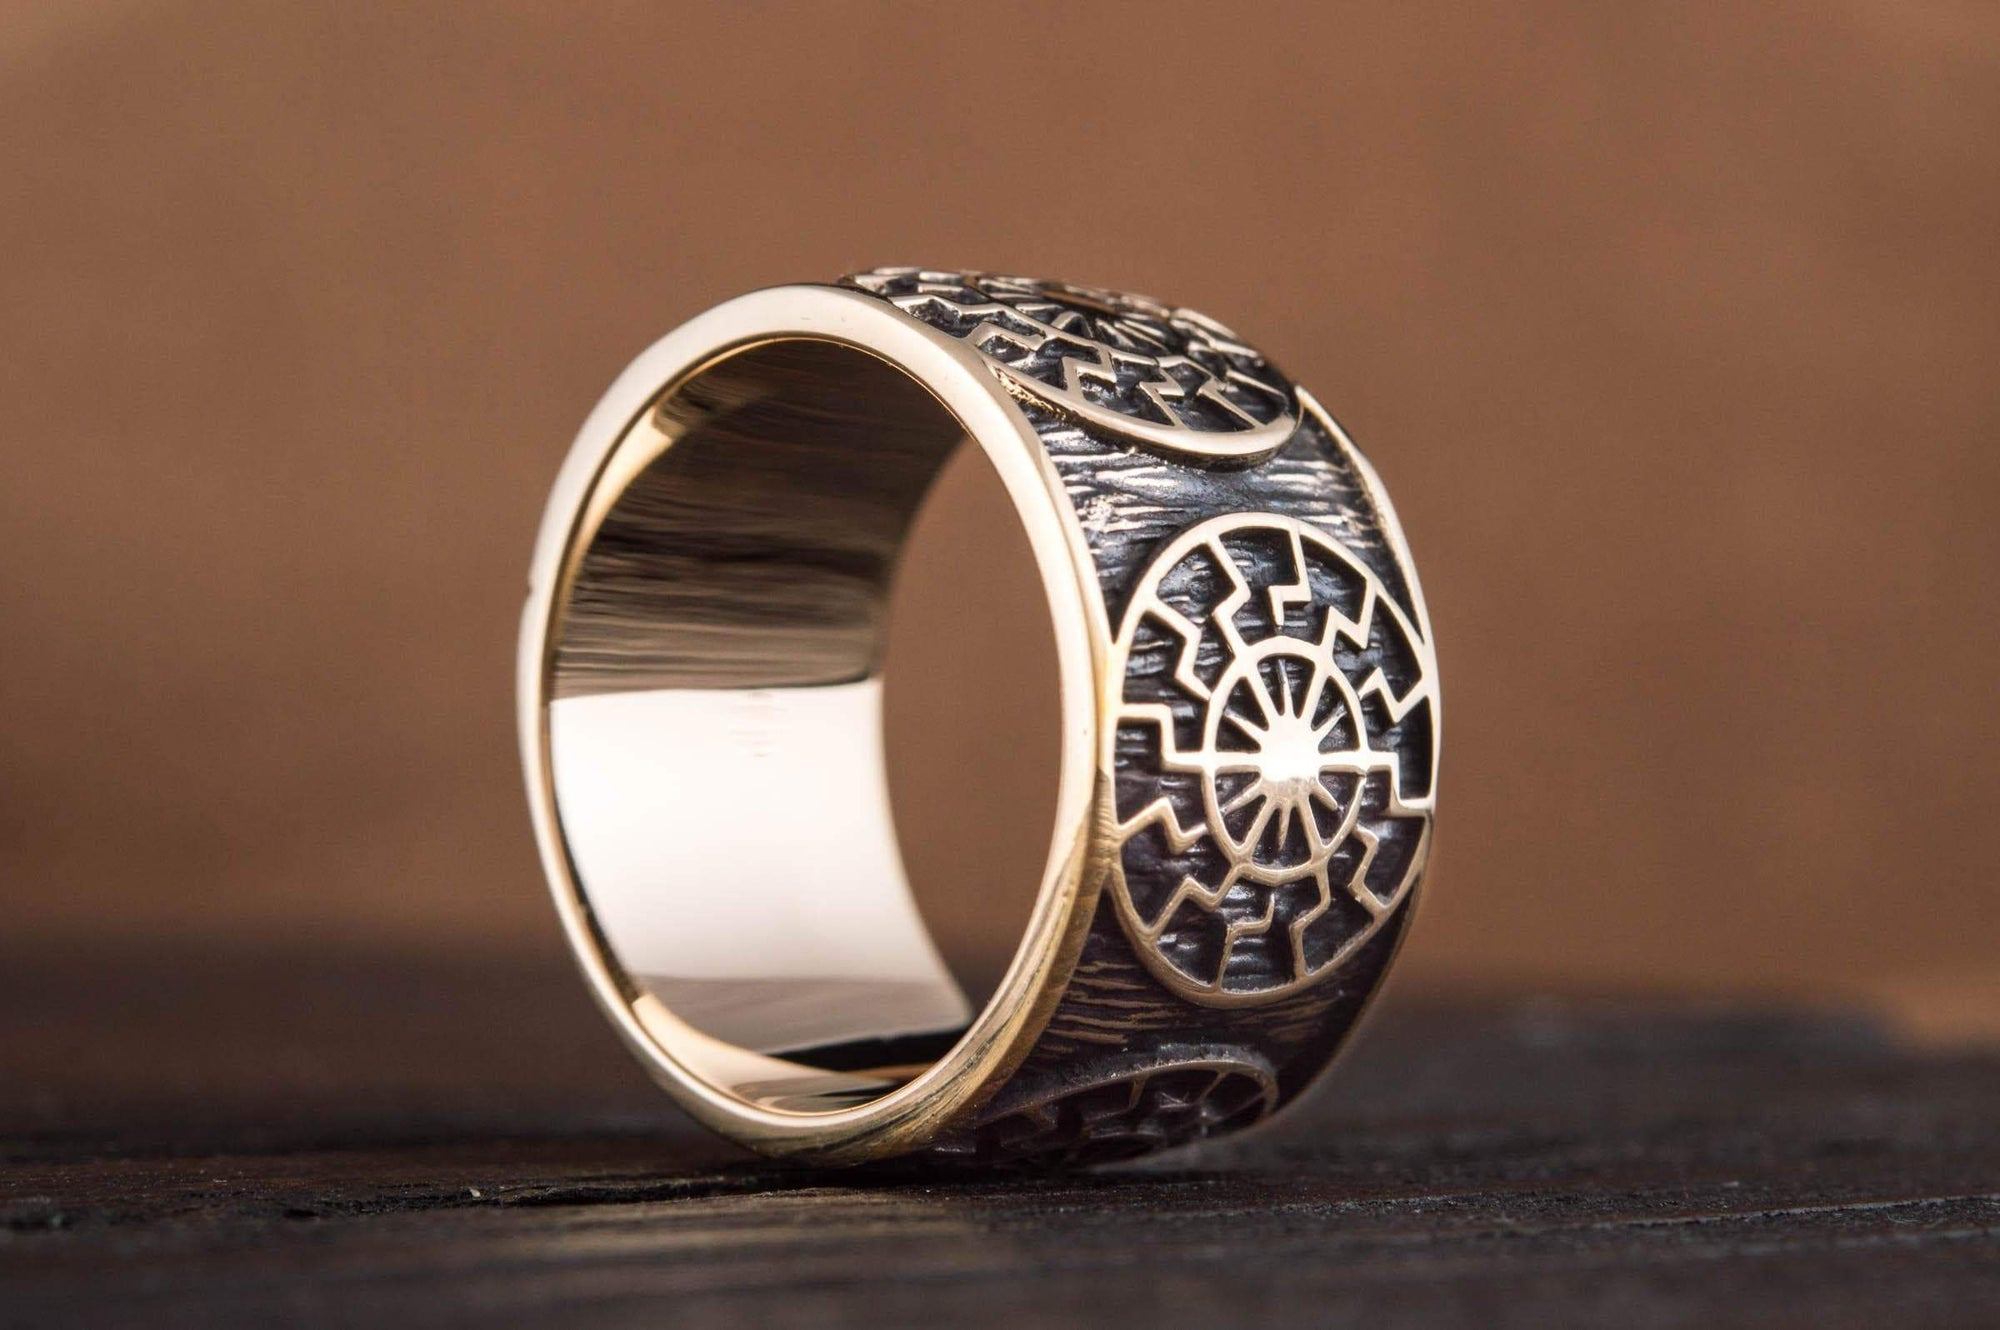 Rings BRONZE / US 7 Vikings Black Sun Symbol Handcrafted Norse Ring Ancient Treasures Ancientreasures Viking Odin Thor Mjolnir Celtic Ancient Egypt Norse Norse Mythology